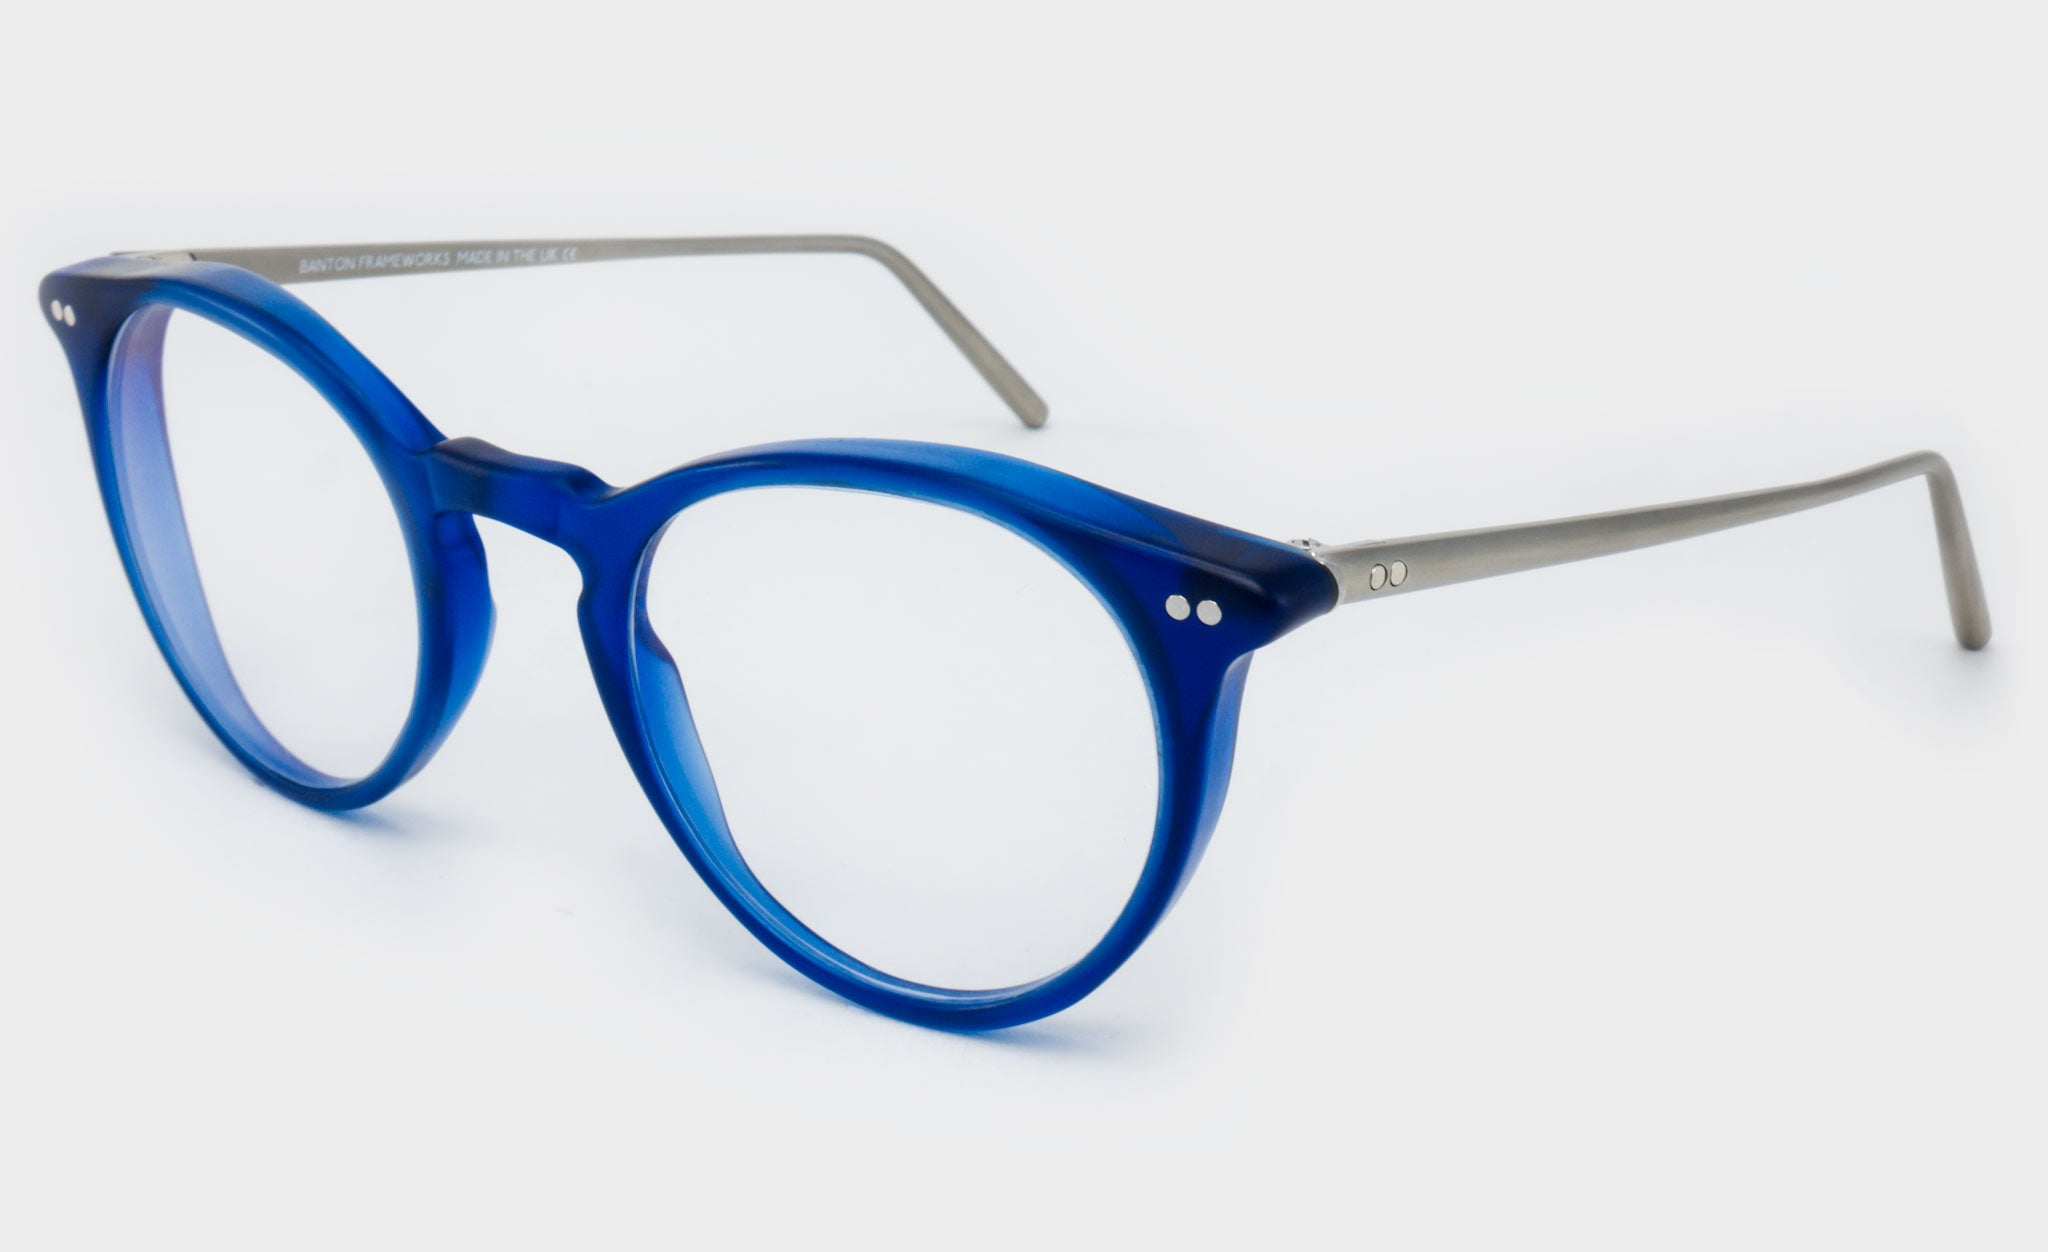 Varifocal-Round-Blue-frame-glasses-Side-View